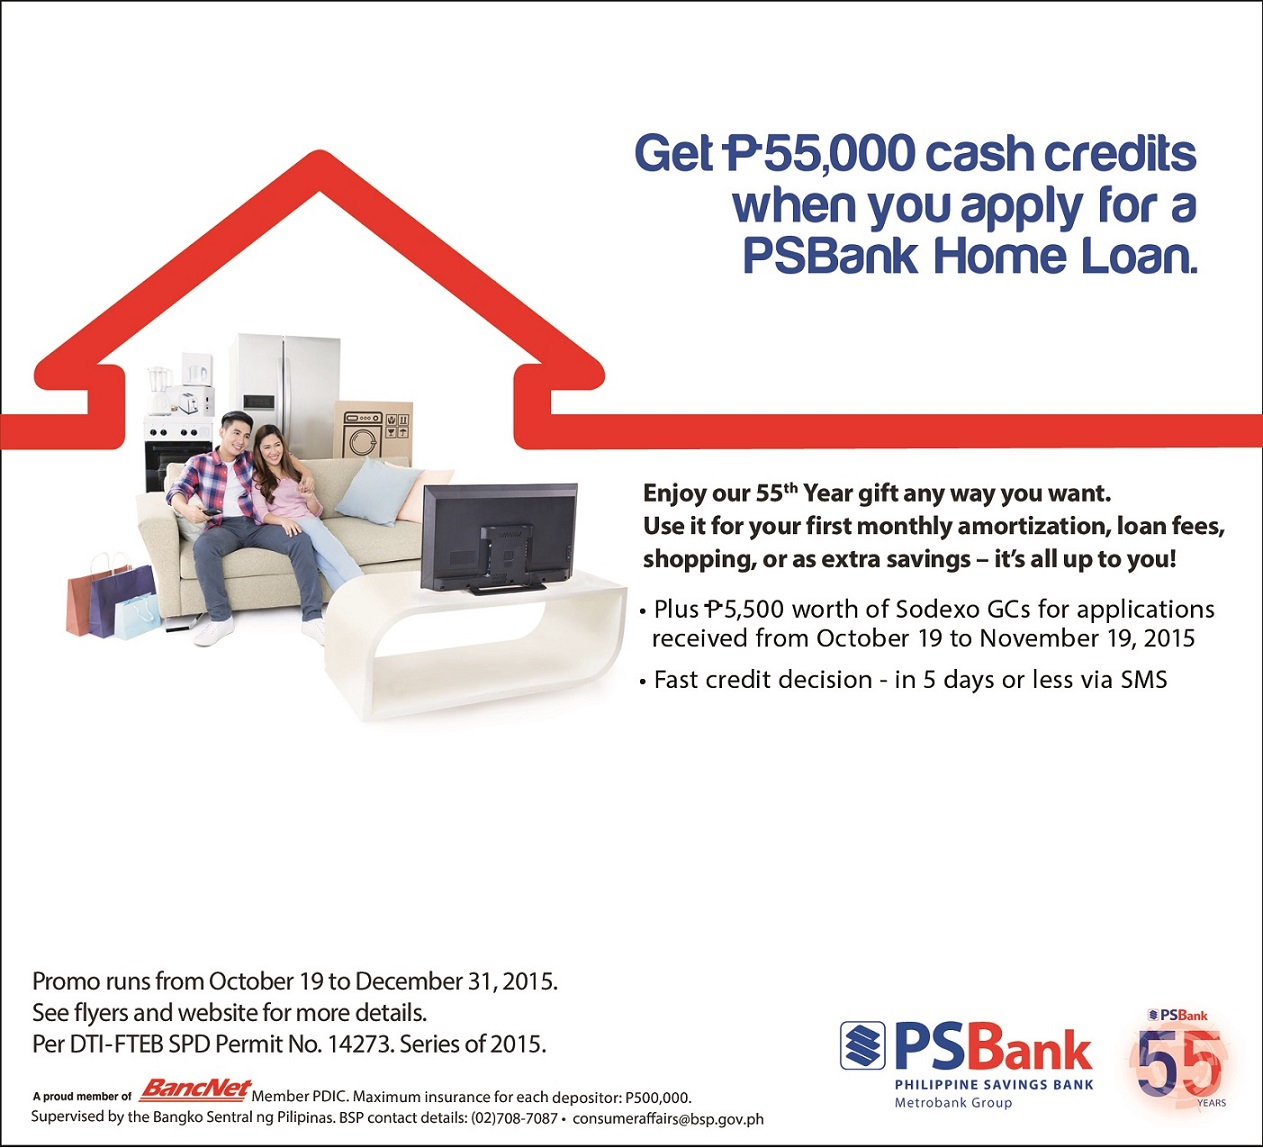 PSBank Home Loan